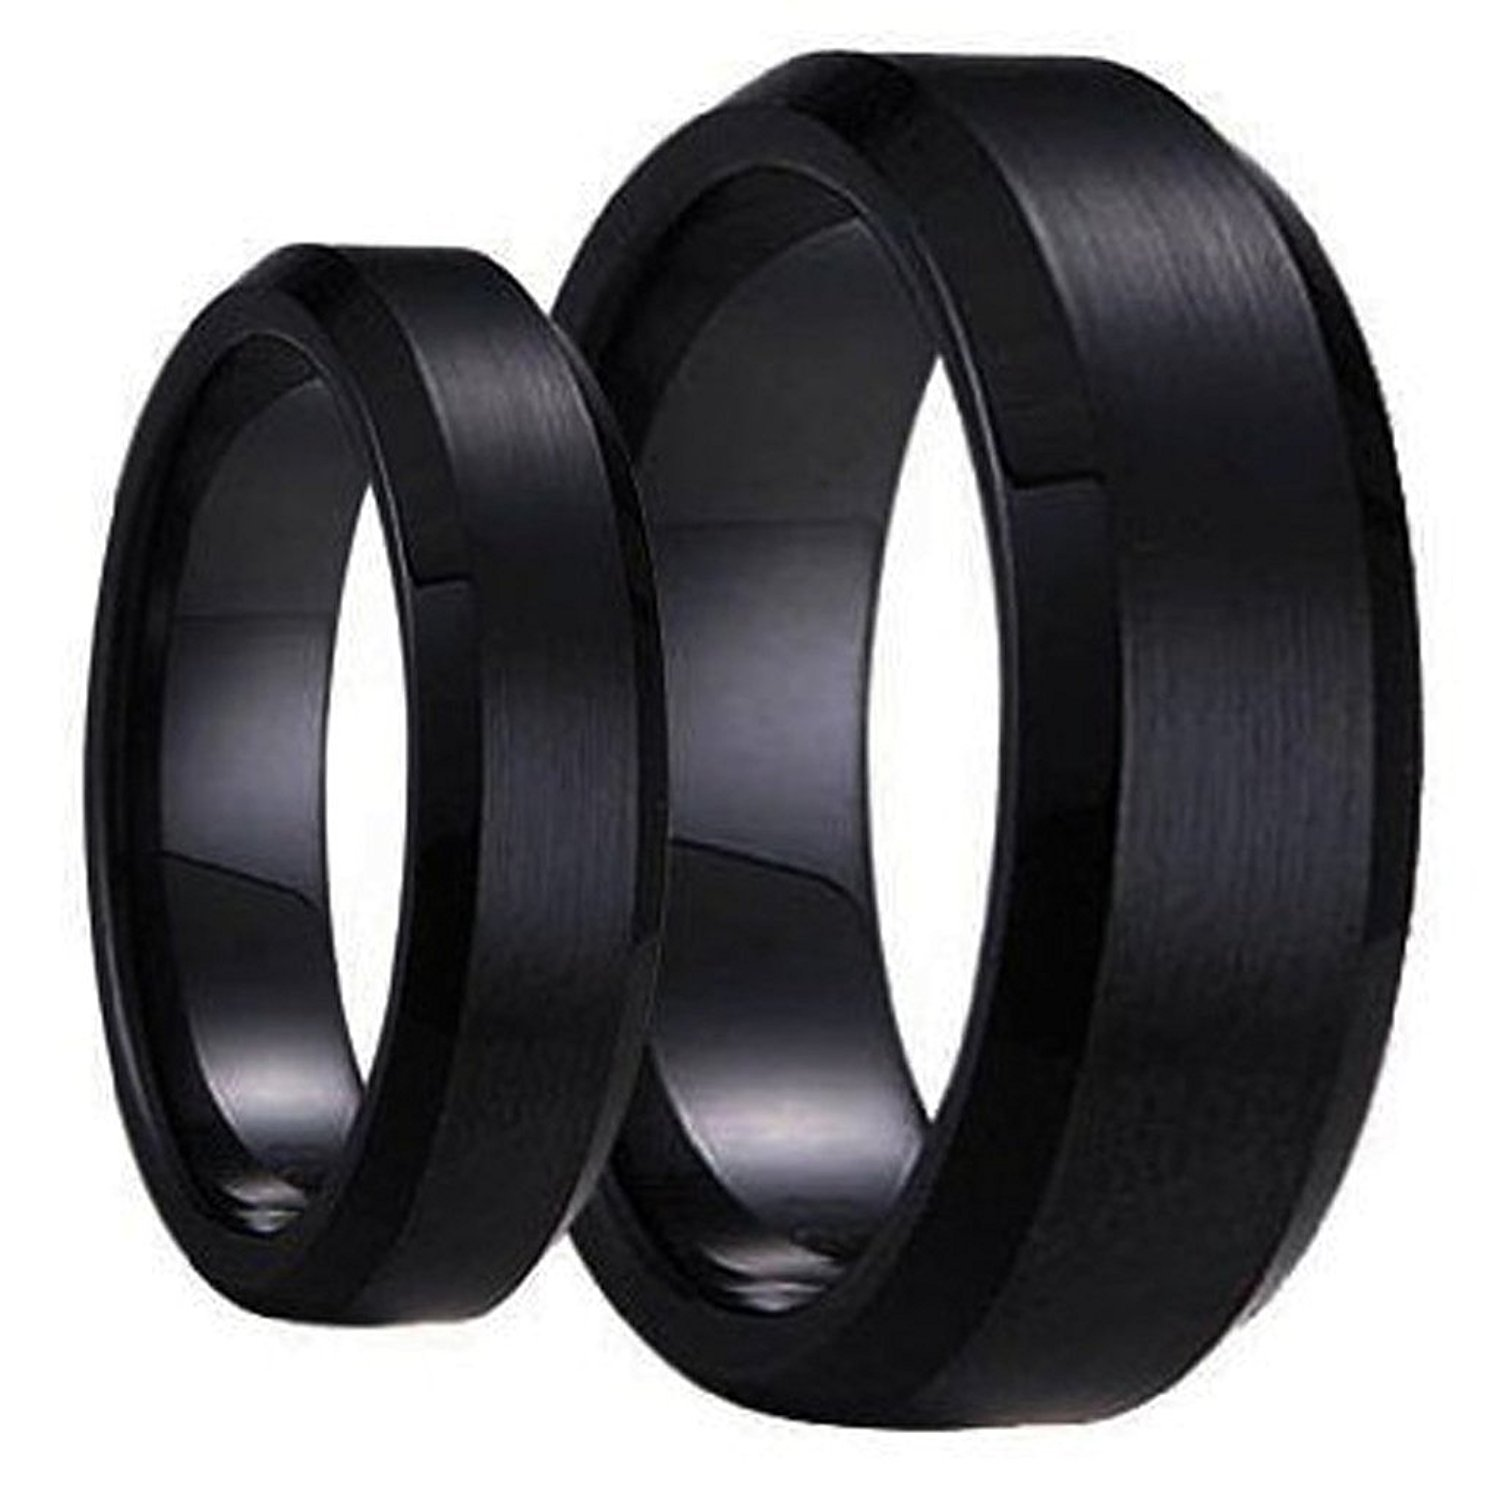 Buy Swinger Black Ring Set His Amp Her 39 S Matching 6mm 8mm